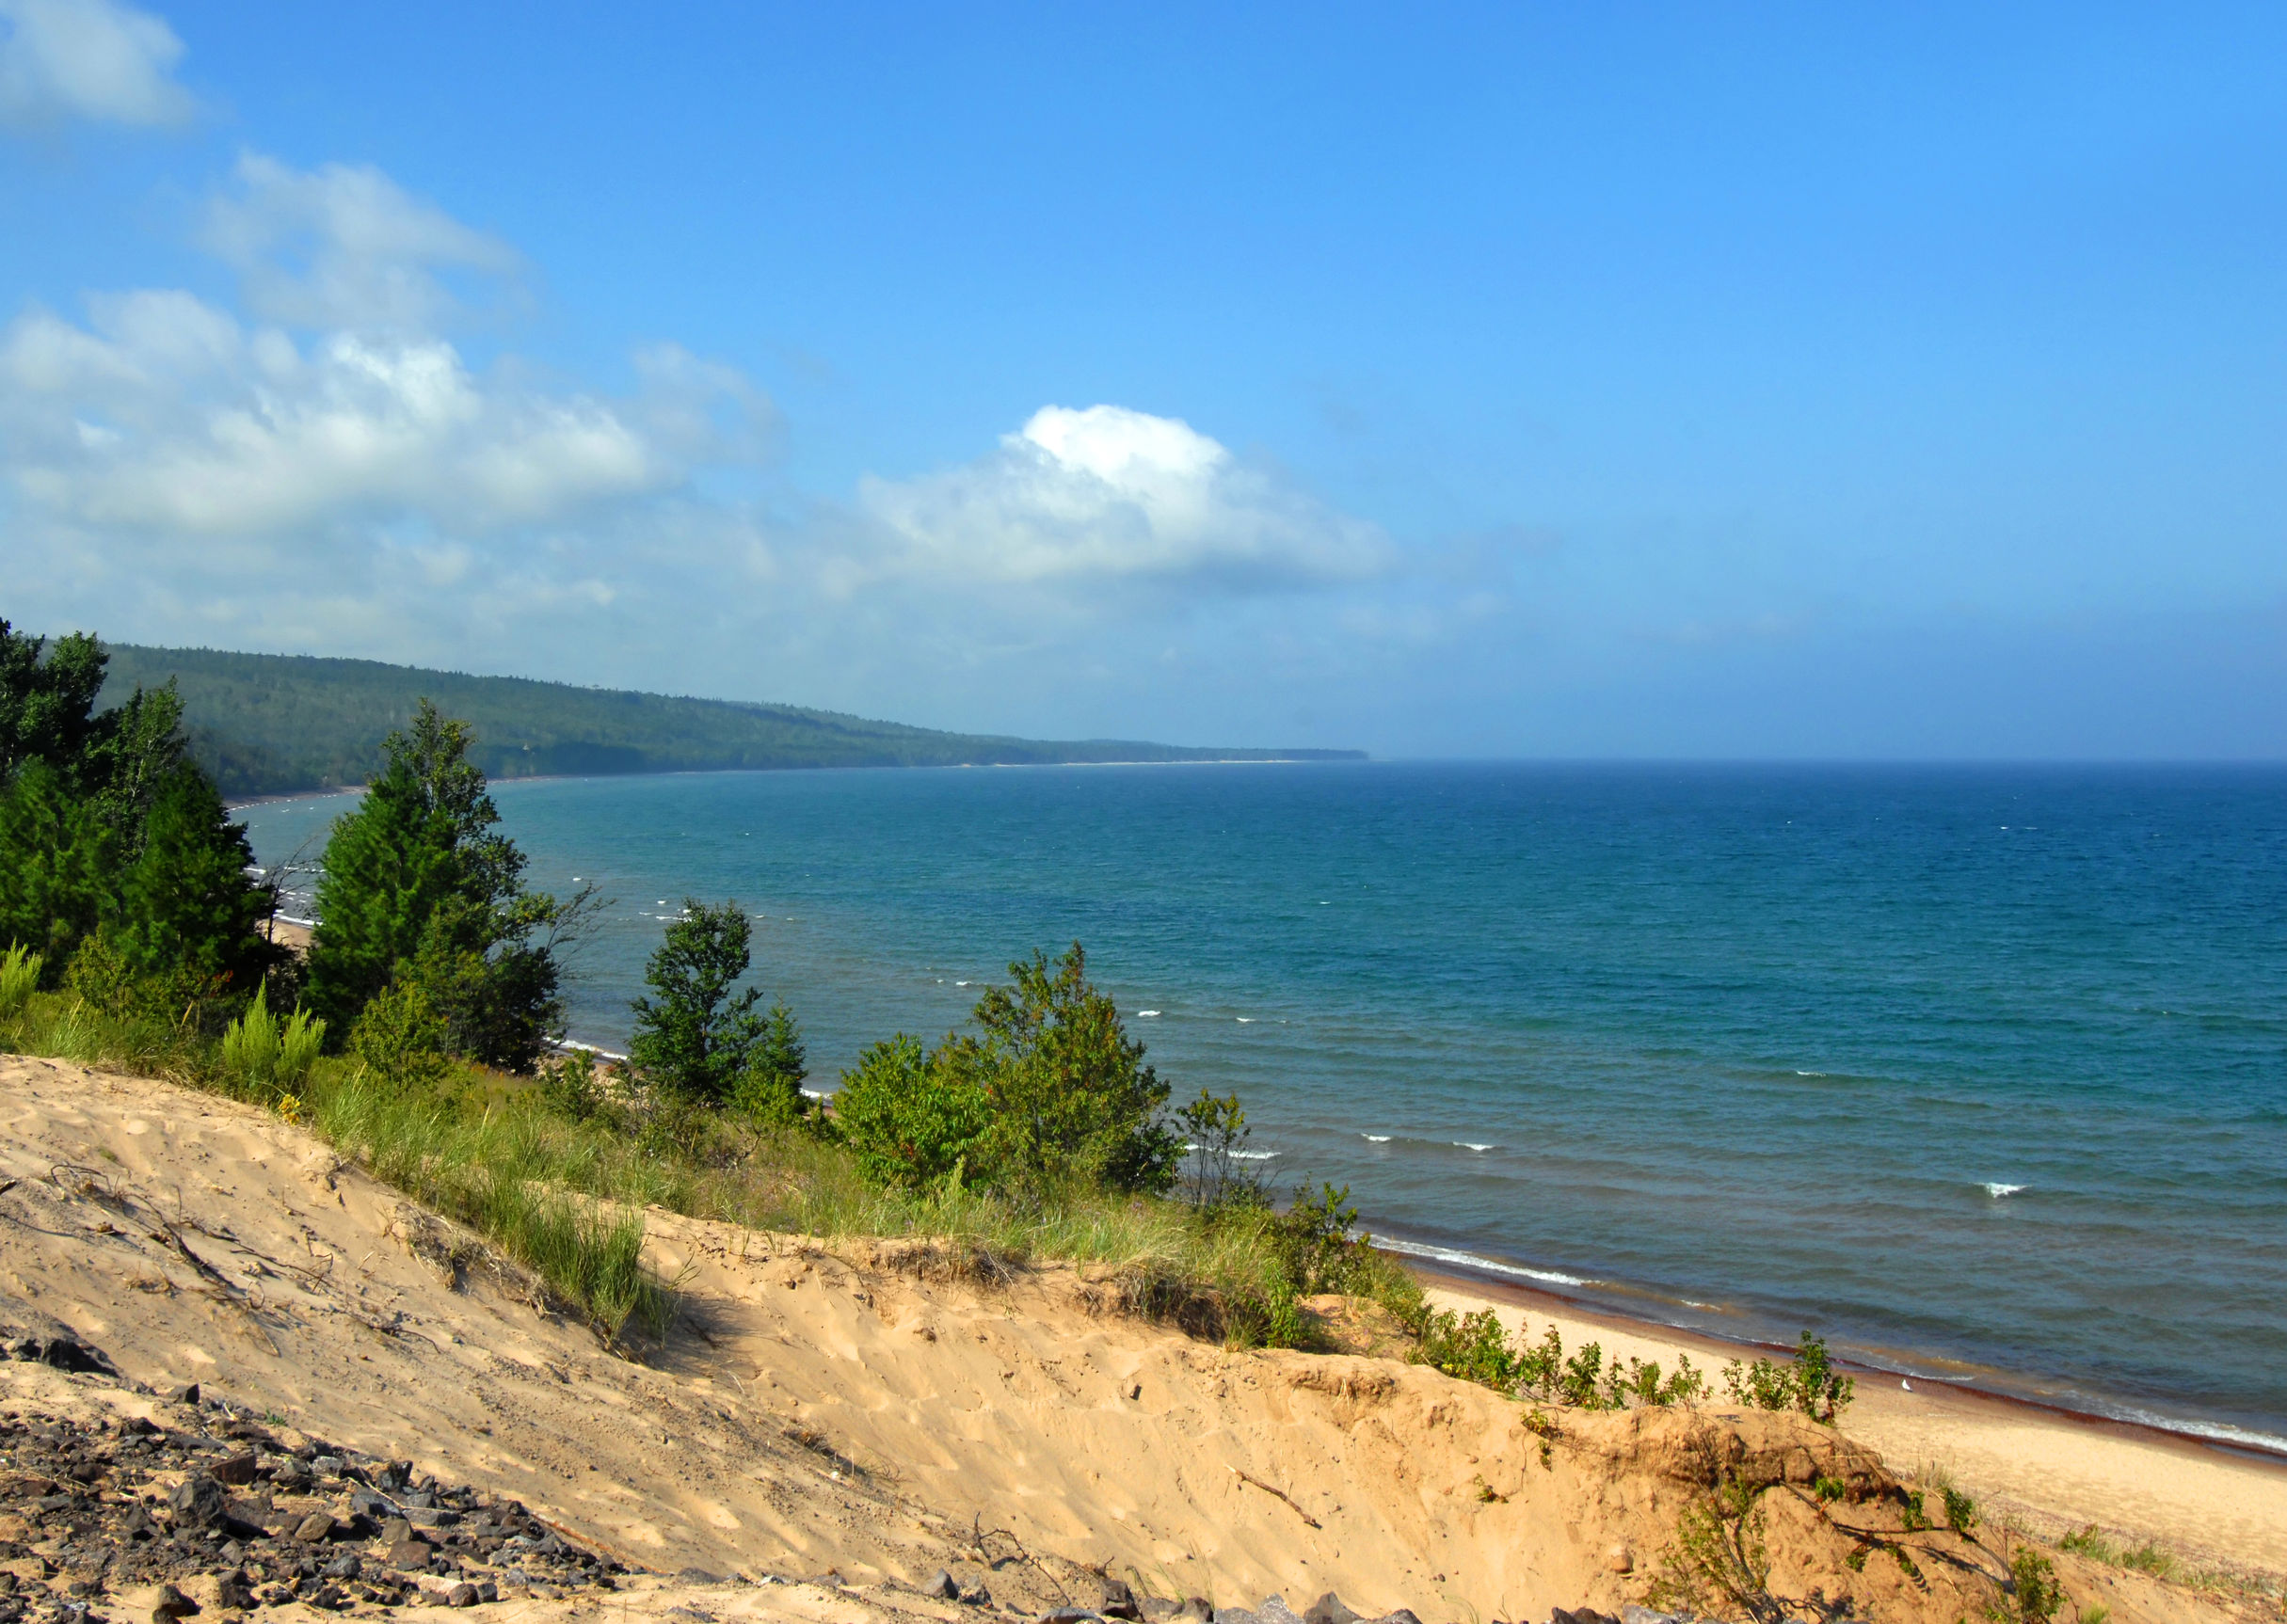 3 Road Tours to Reach a Great Lakes Beach in Michigan - MARVAC